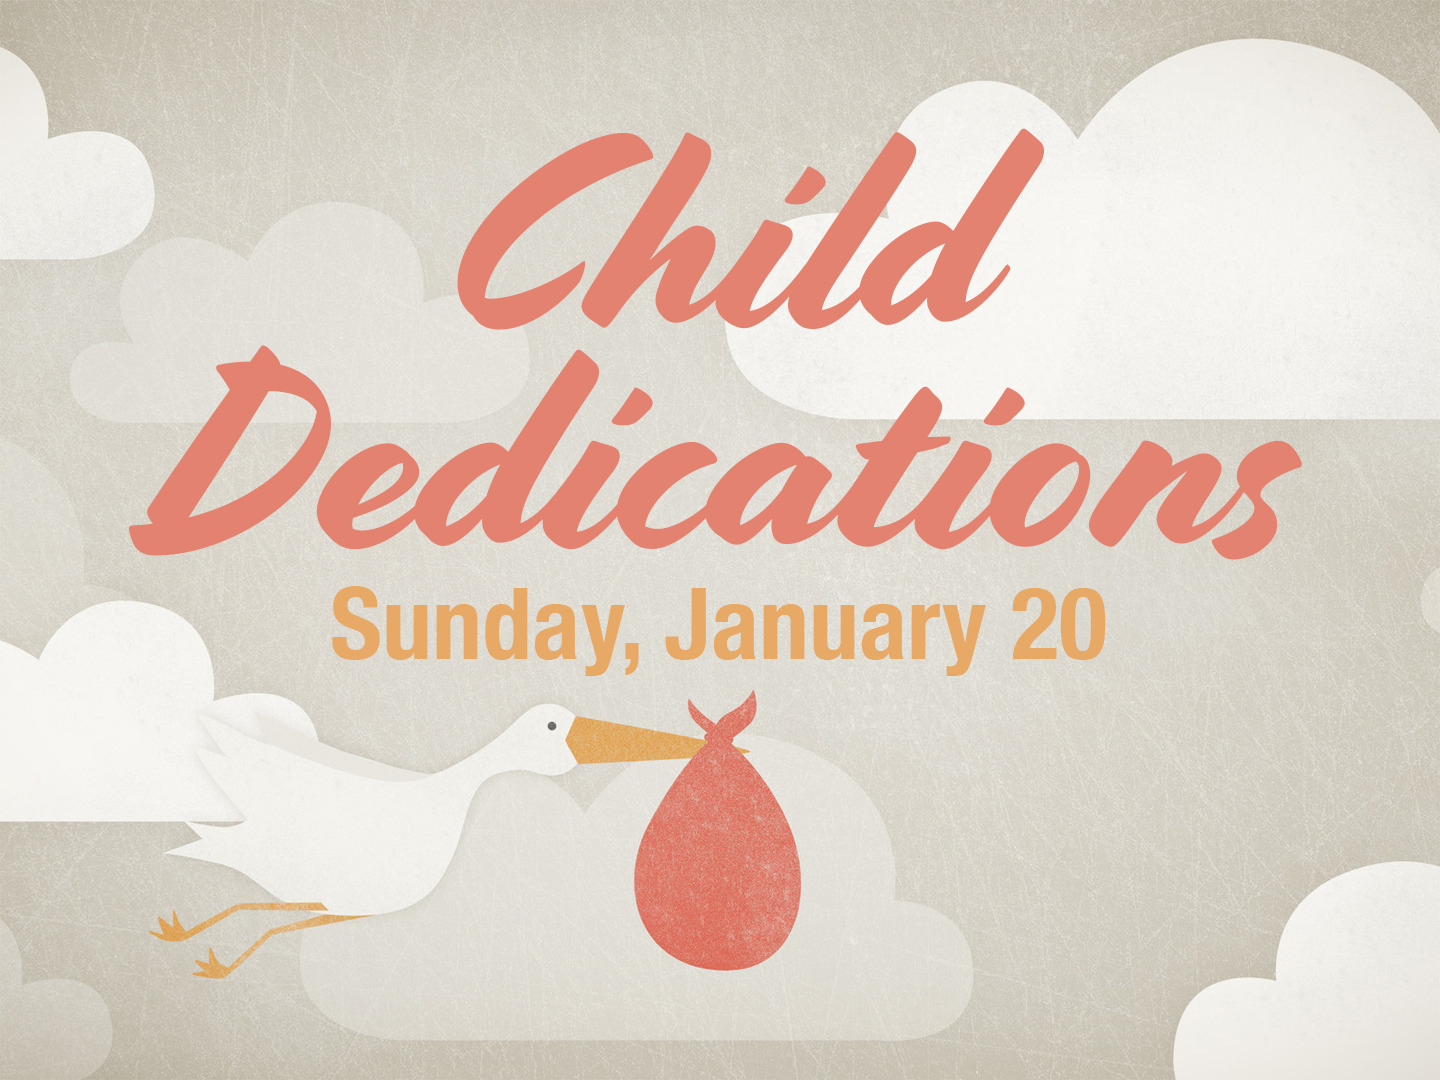 Child Dedications - Jan 20.jpg